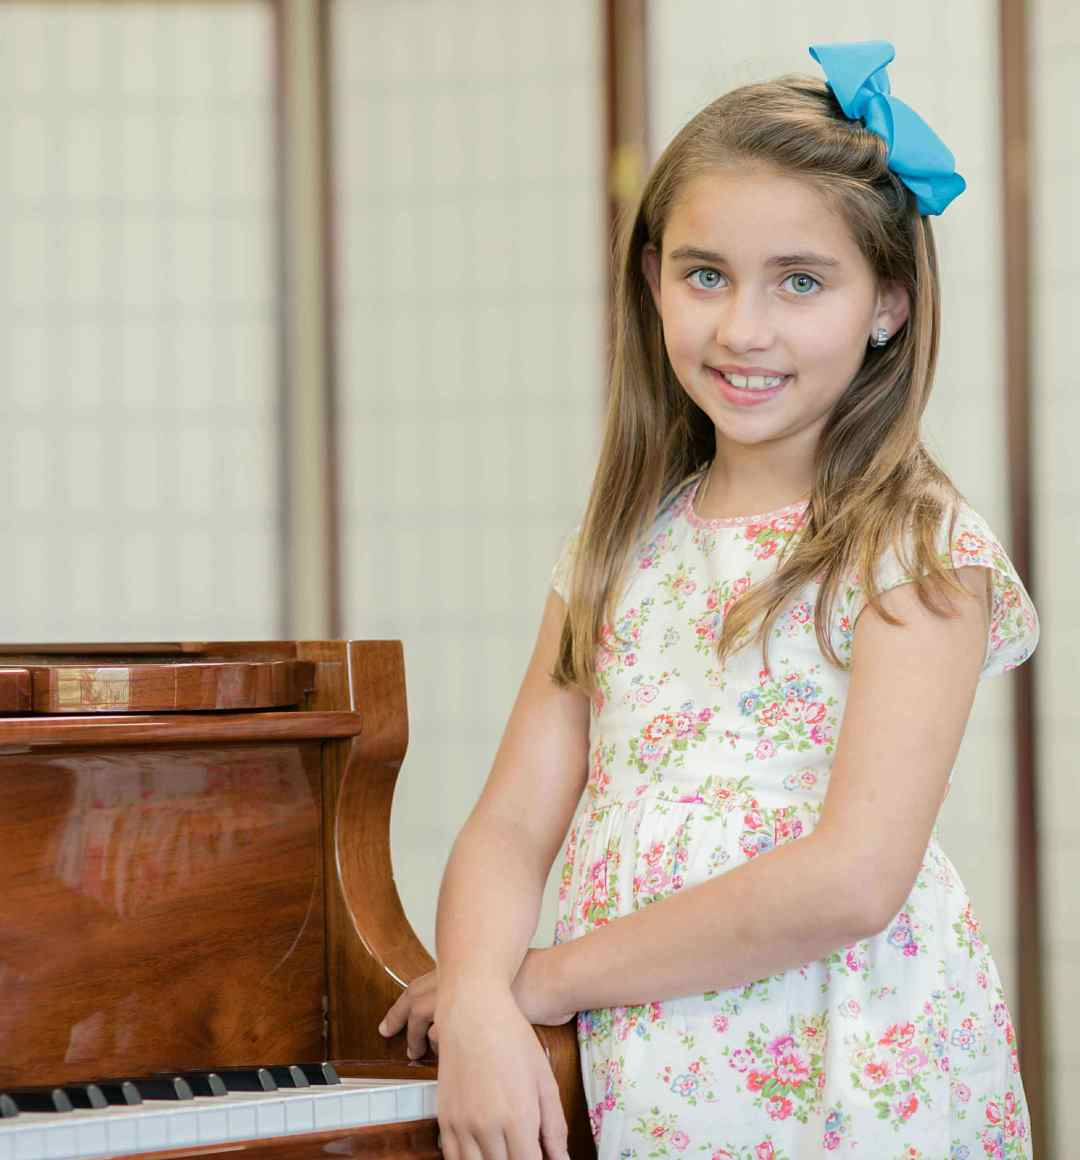 Piano student at The Conservatory of Music at North Katy